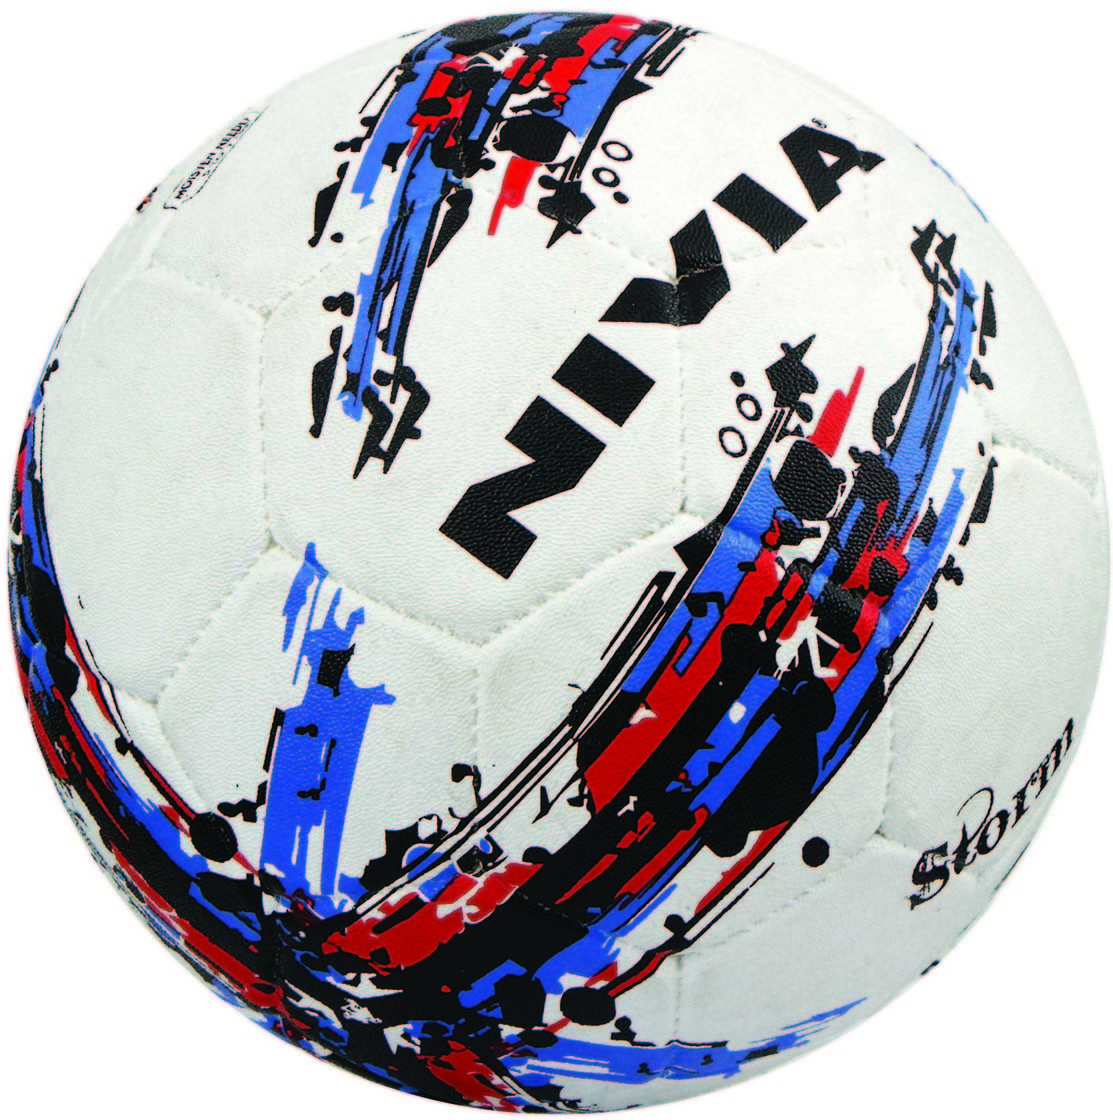 Deals | Nivia, Yonex.... Sports & Fitness